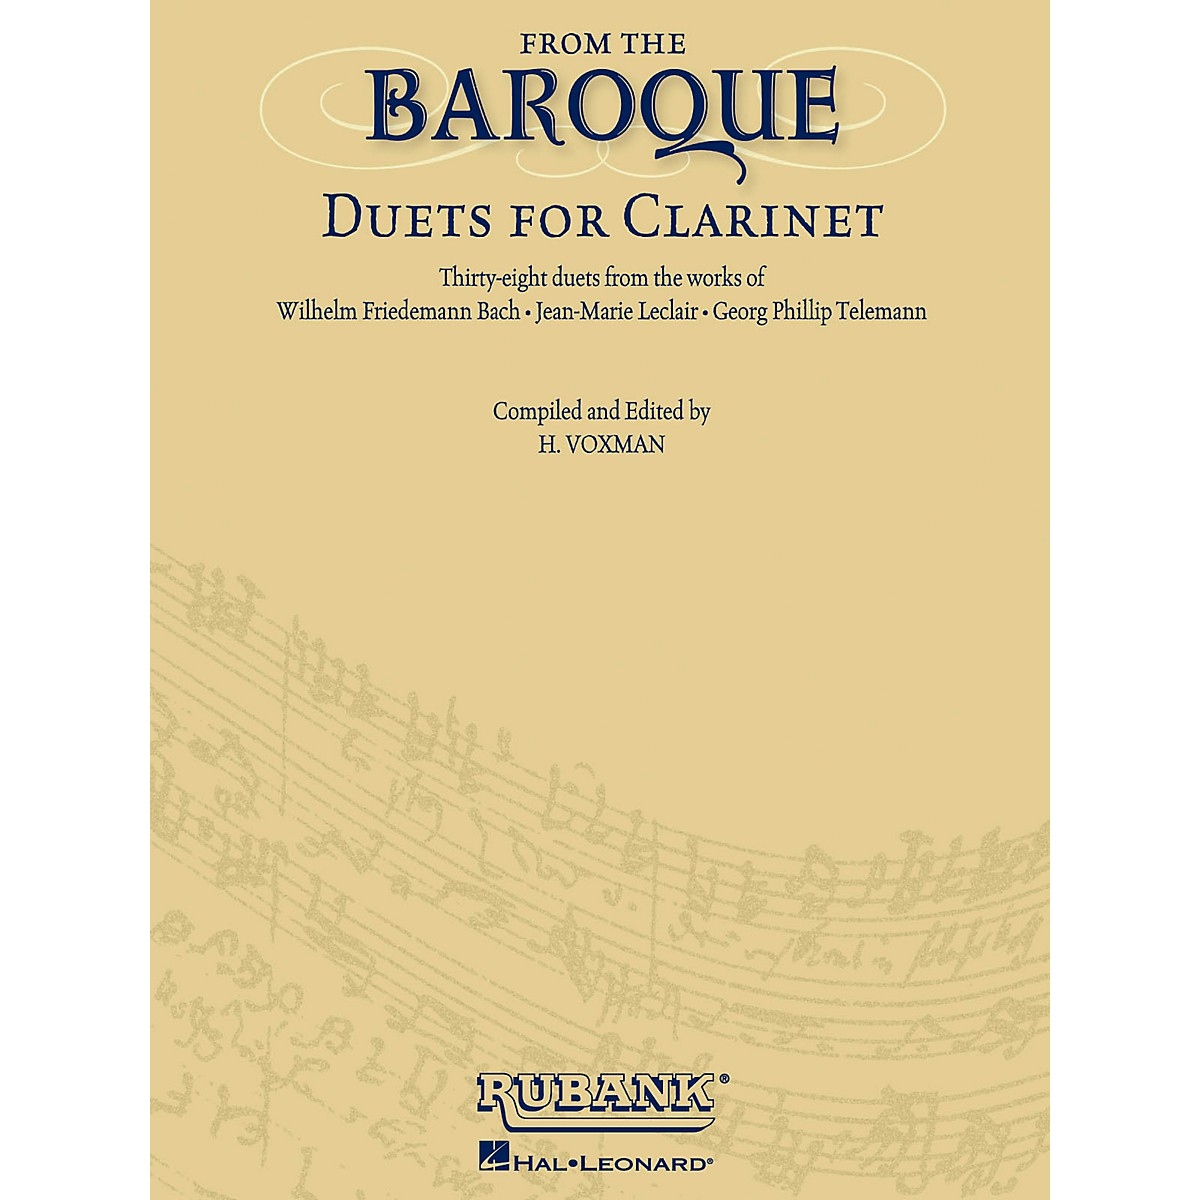 Rubank Publications From the Baroque (Duets for Clarinet) Ensemble Collection Series Softcover